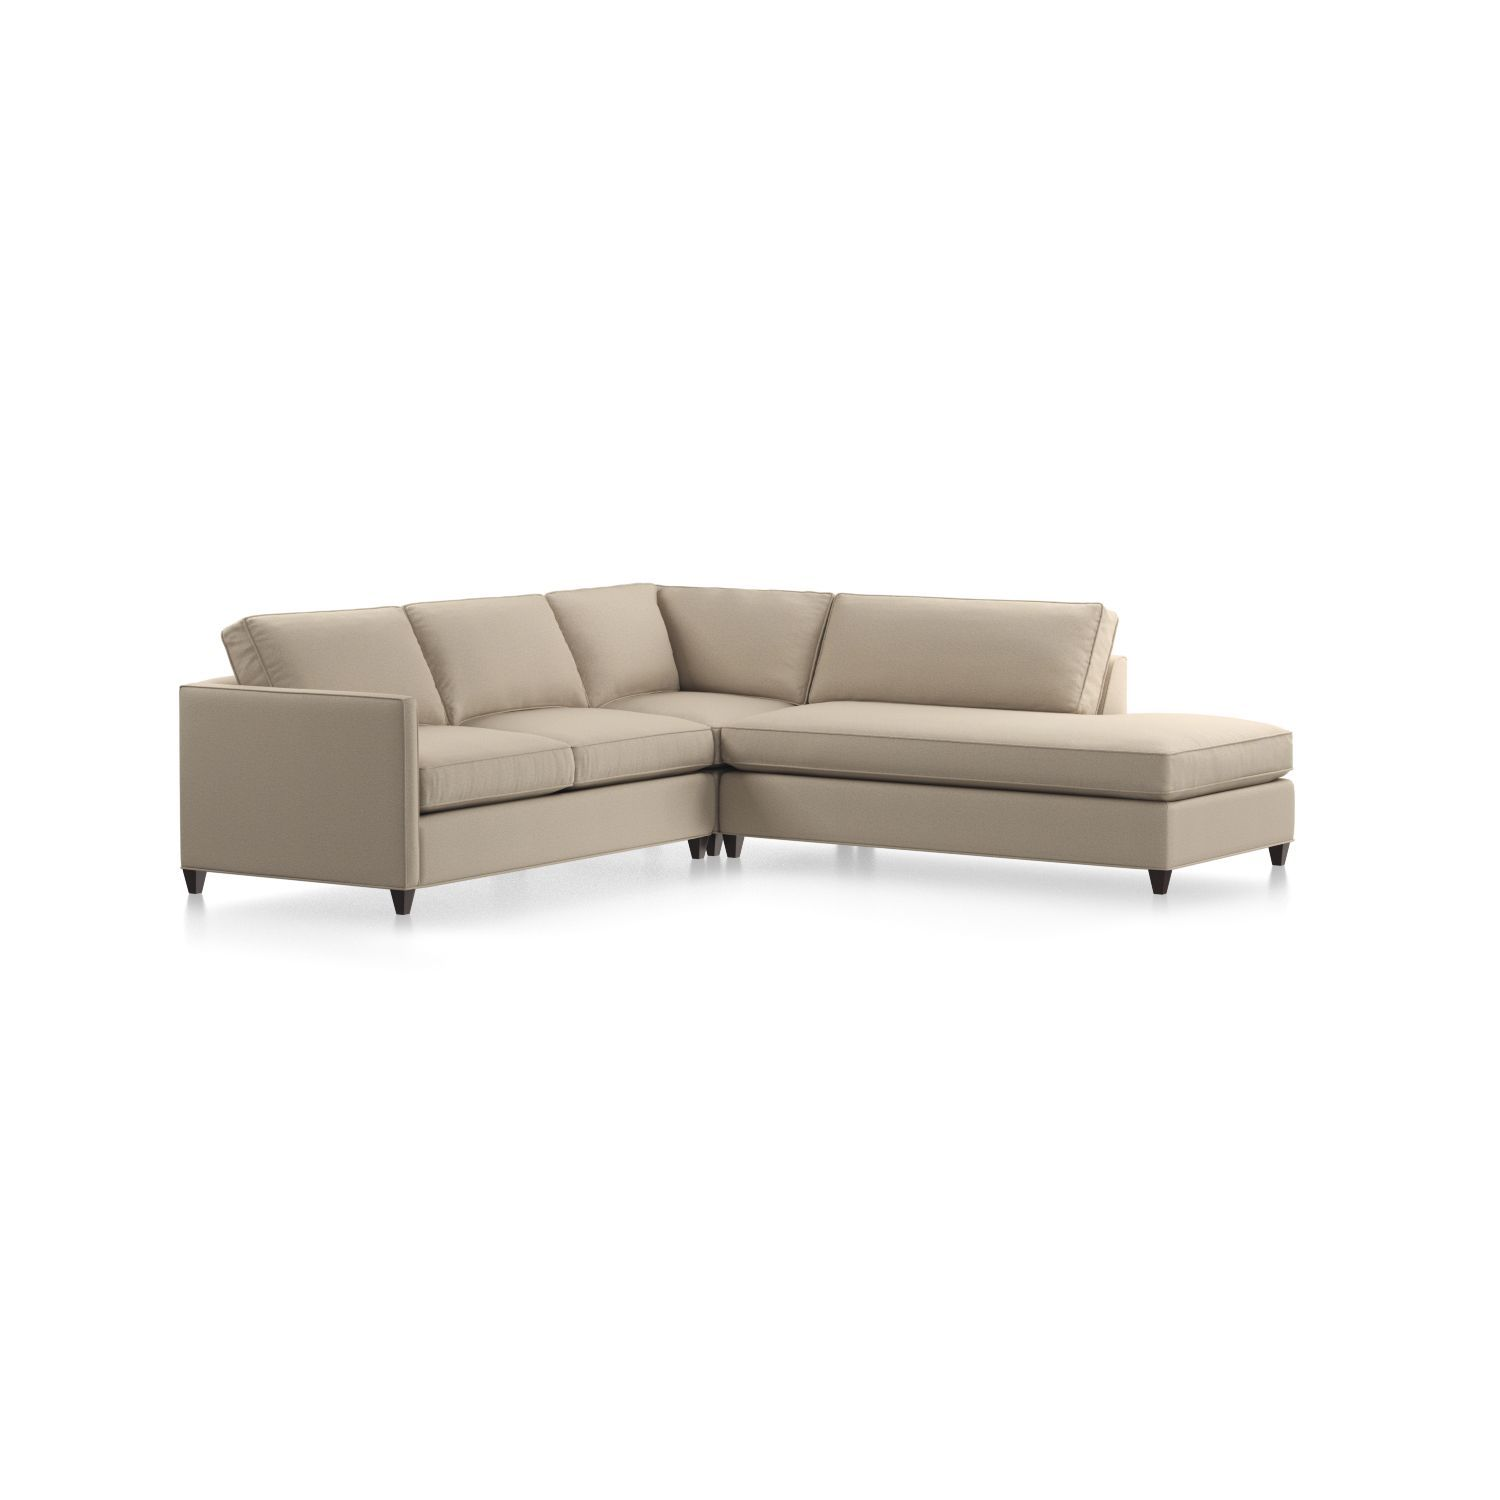 Shop dryden 3 piece sectional for a bit of sparkle and classic definition a hand applied nailhead trim is also available the dryden 3 piece right bumper